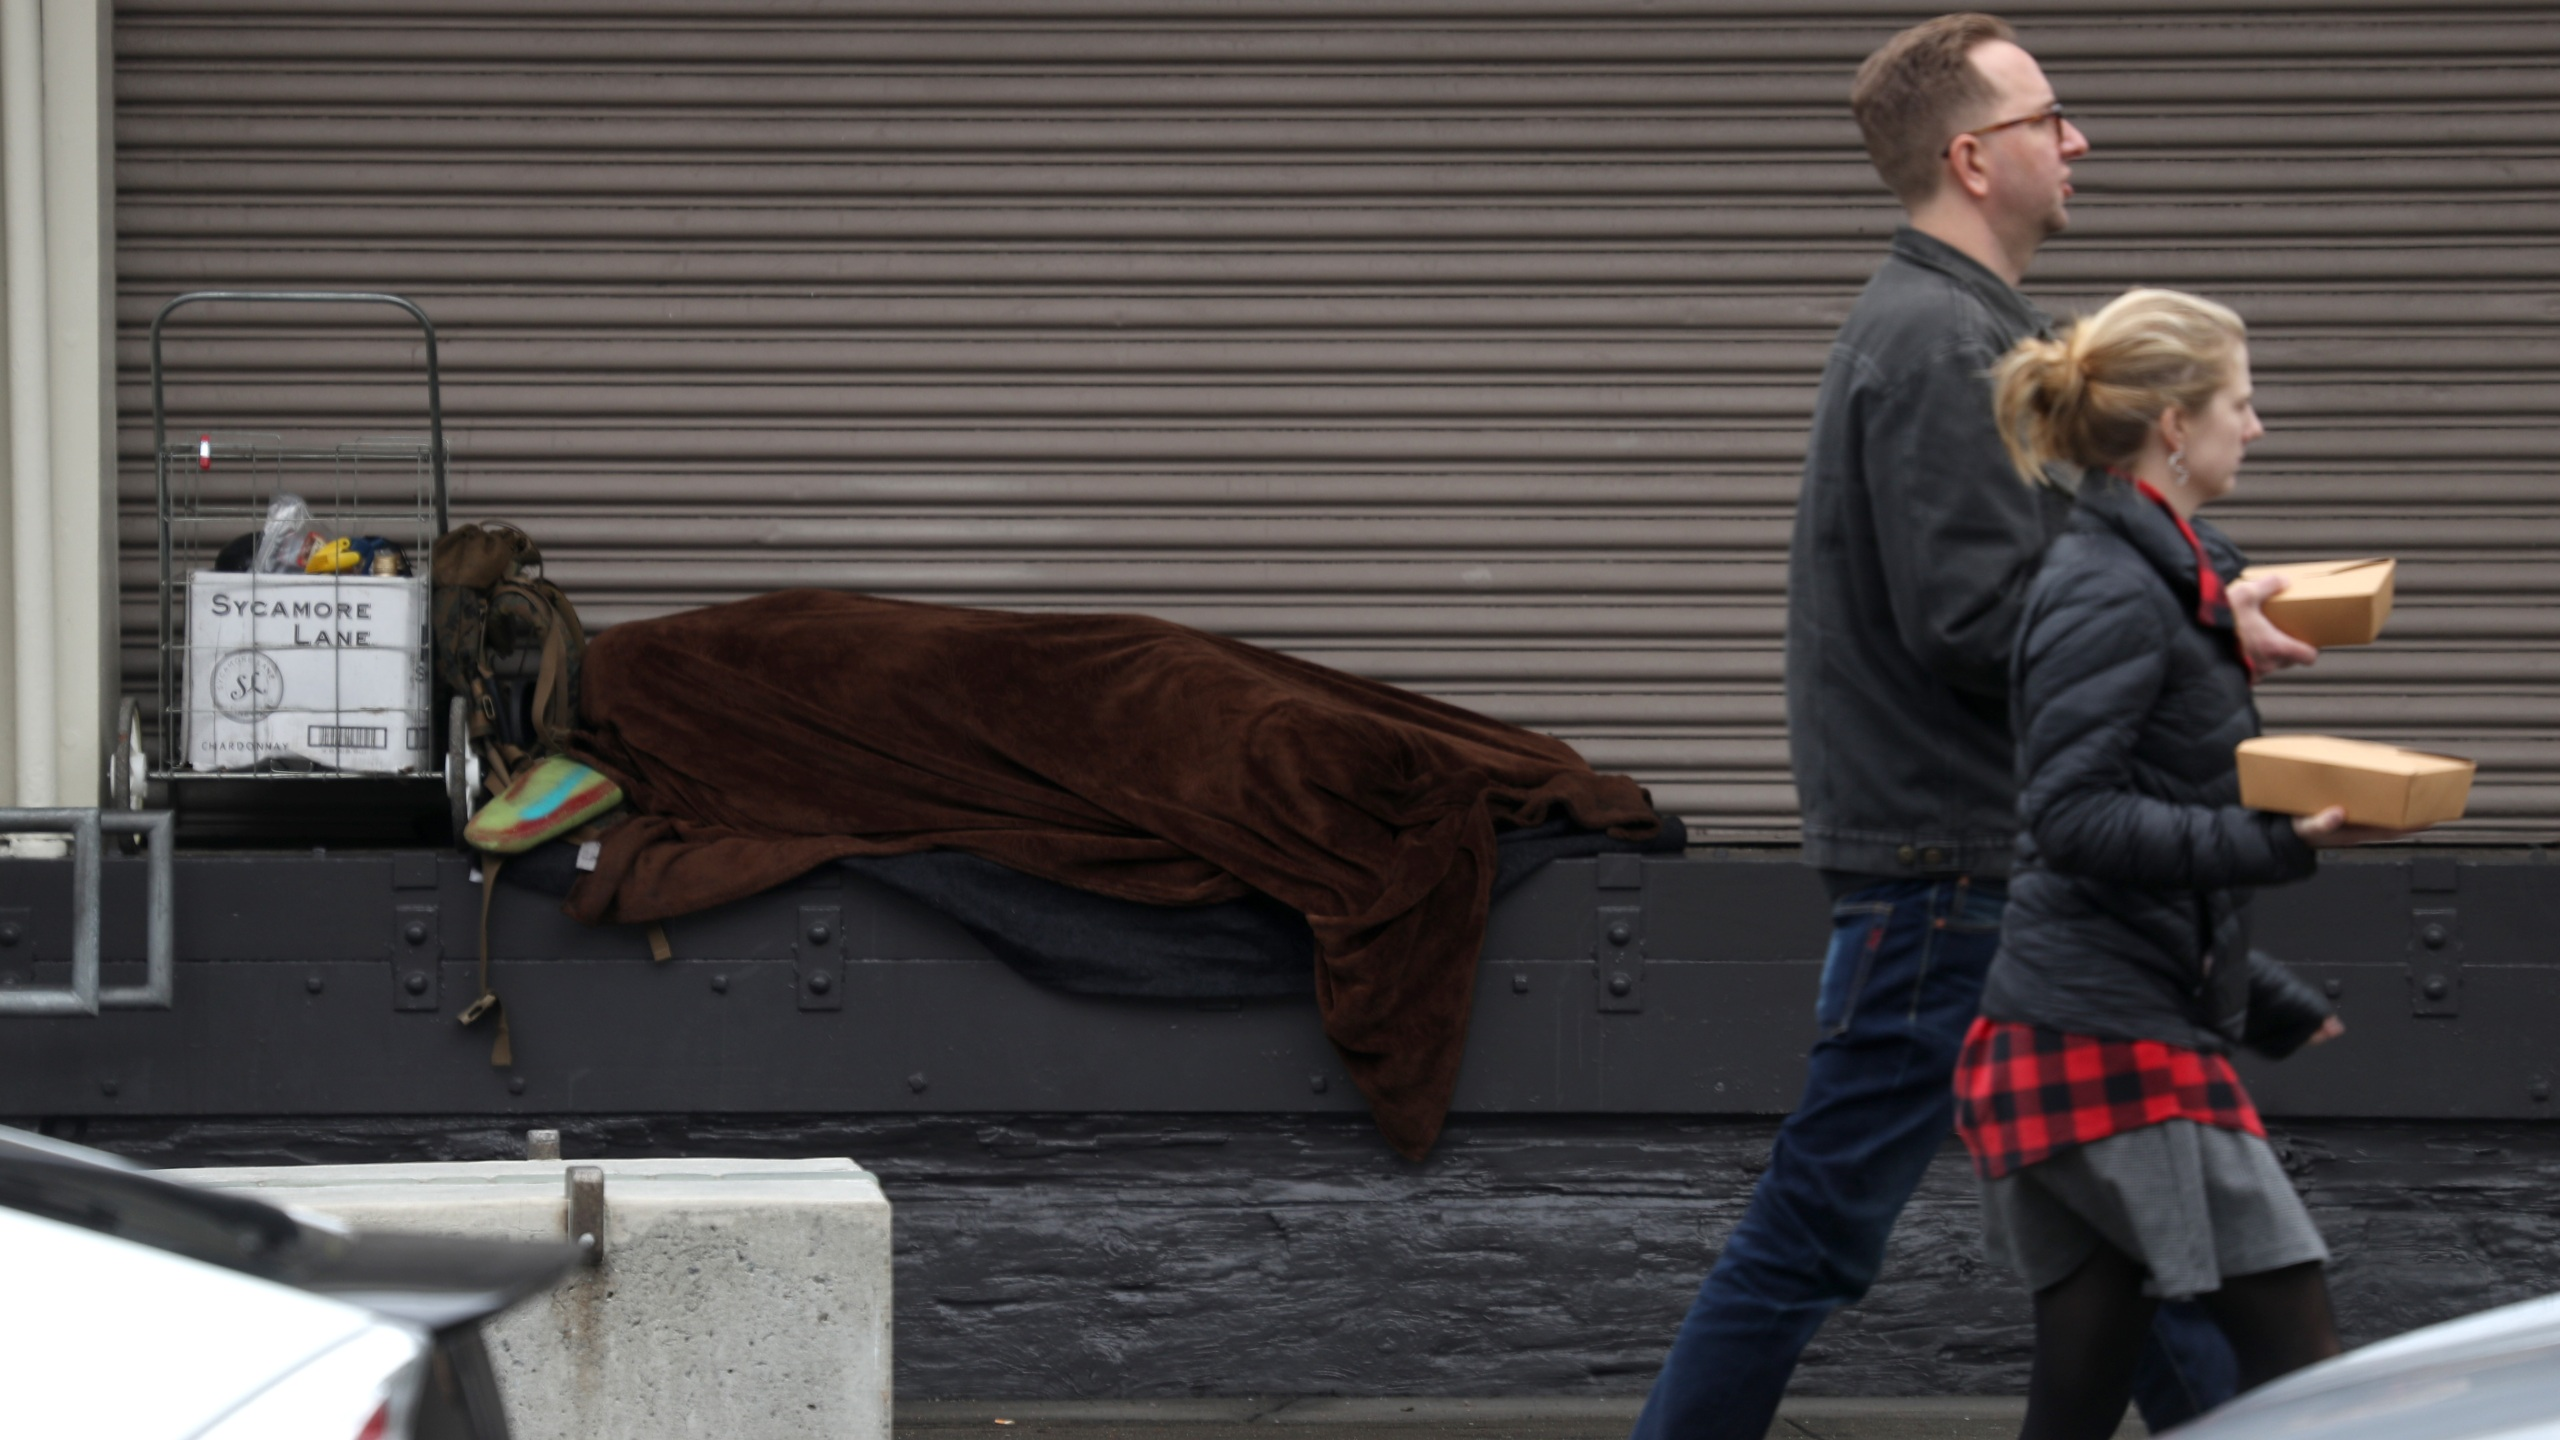 A homeless person sleeps on a loading dock in San Francisco on Dec. 5, 2019. (Credit: Justin Sullivan / Getty Images)